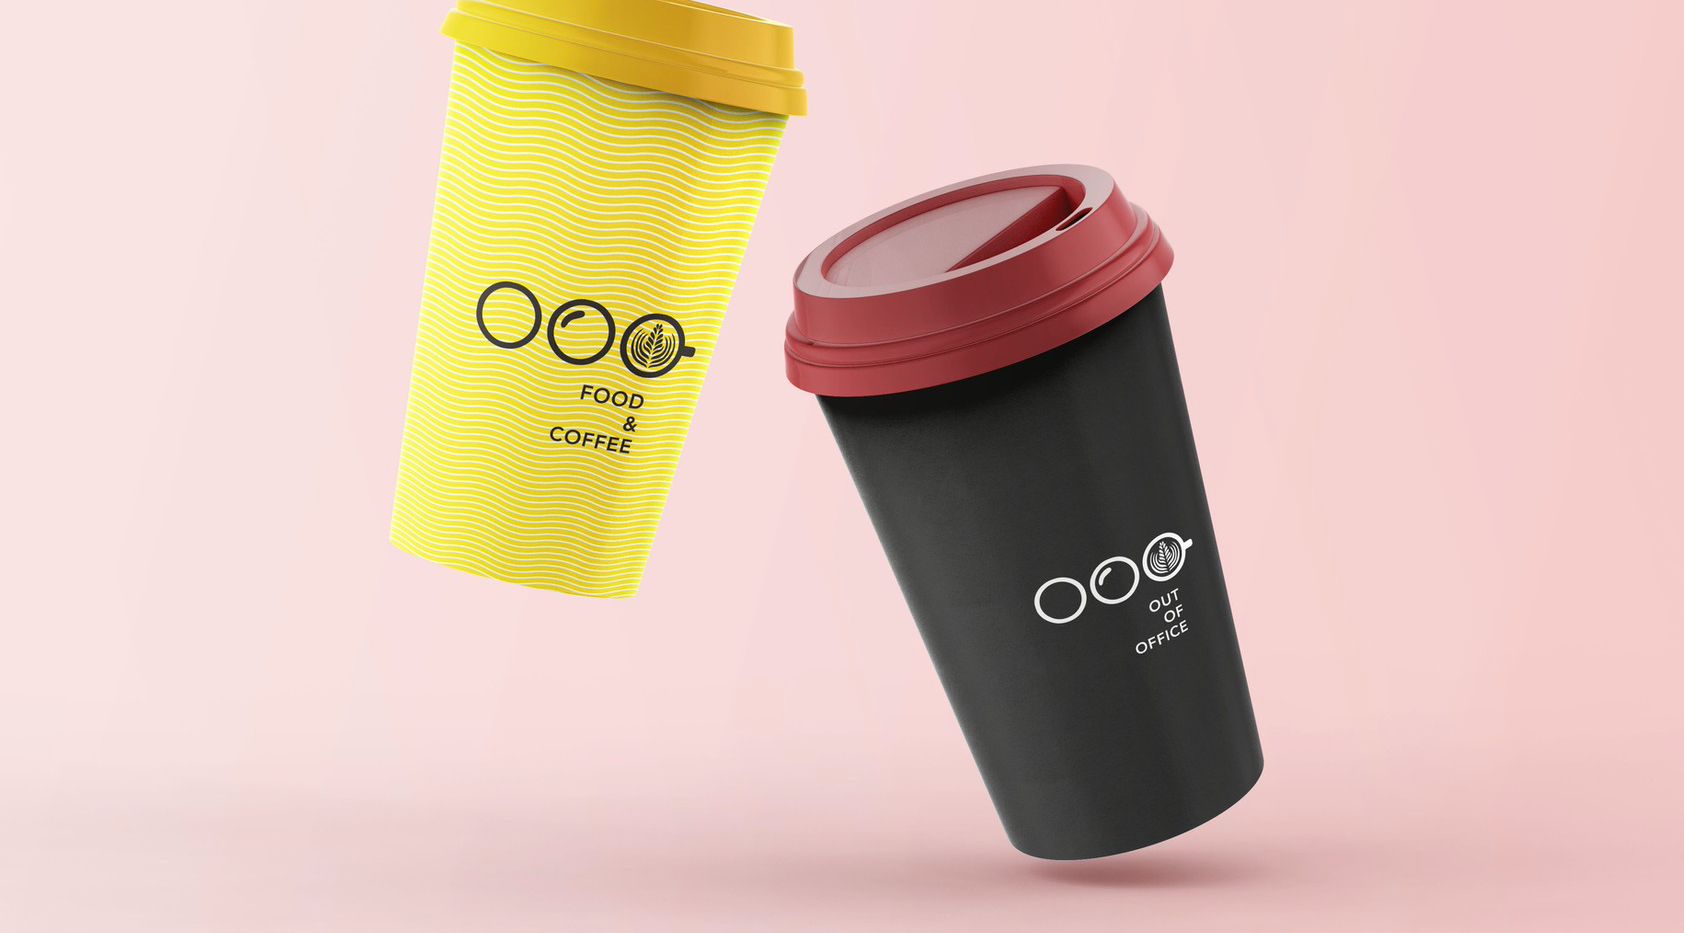 out of office coffee cup